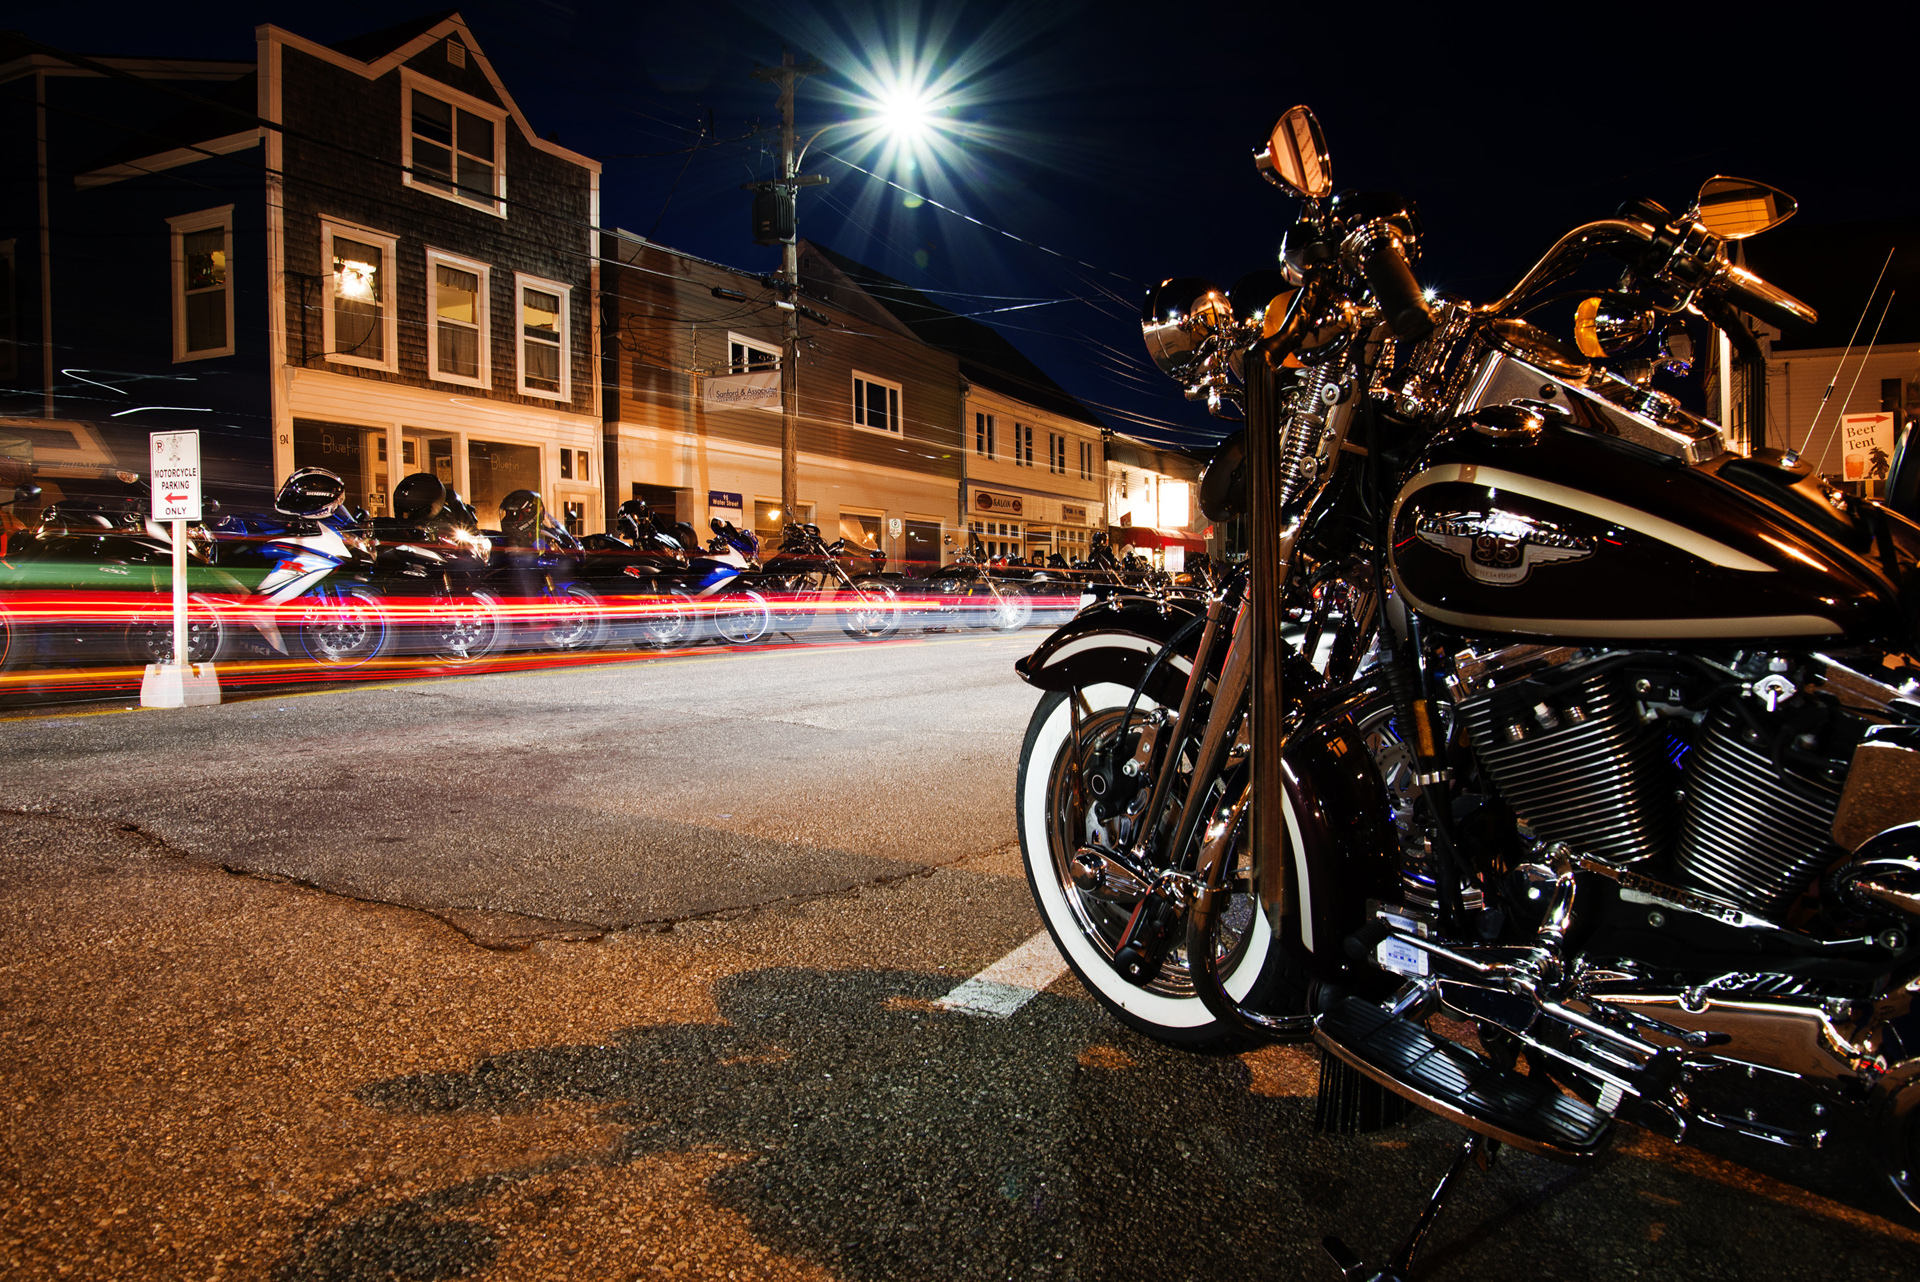 Night time in Digby, during the Wharf Rat Rally.